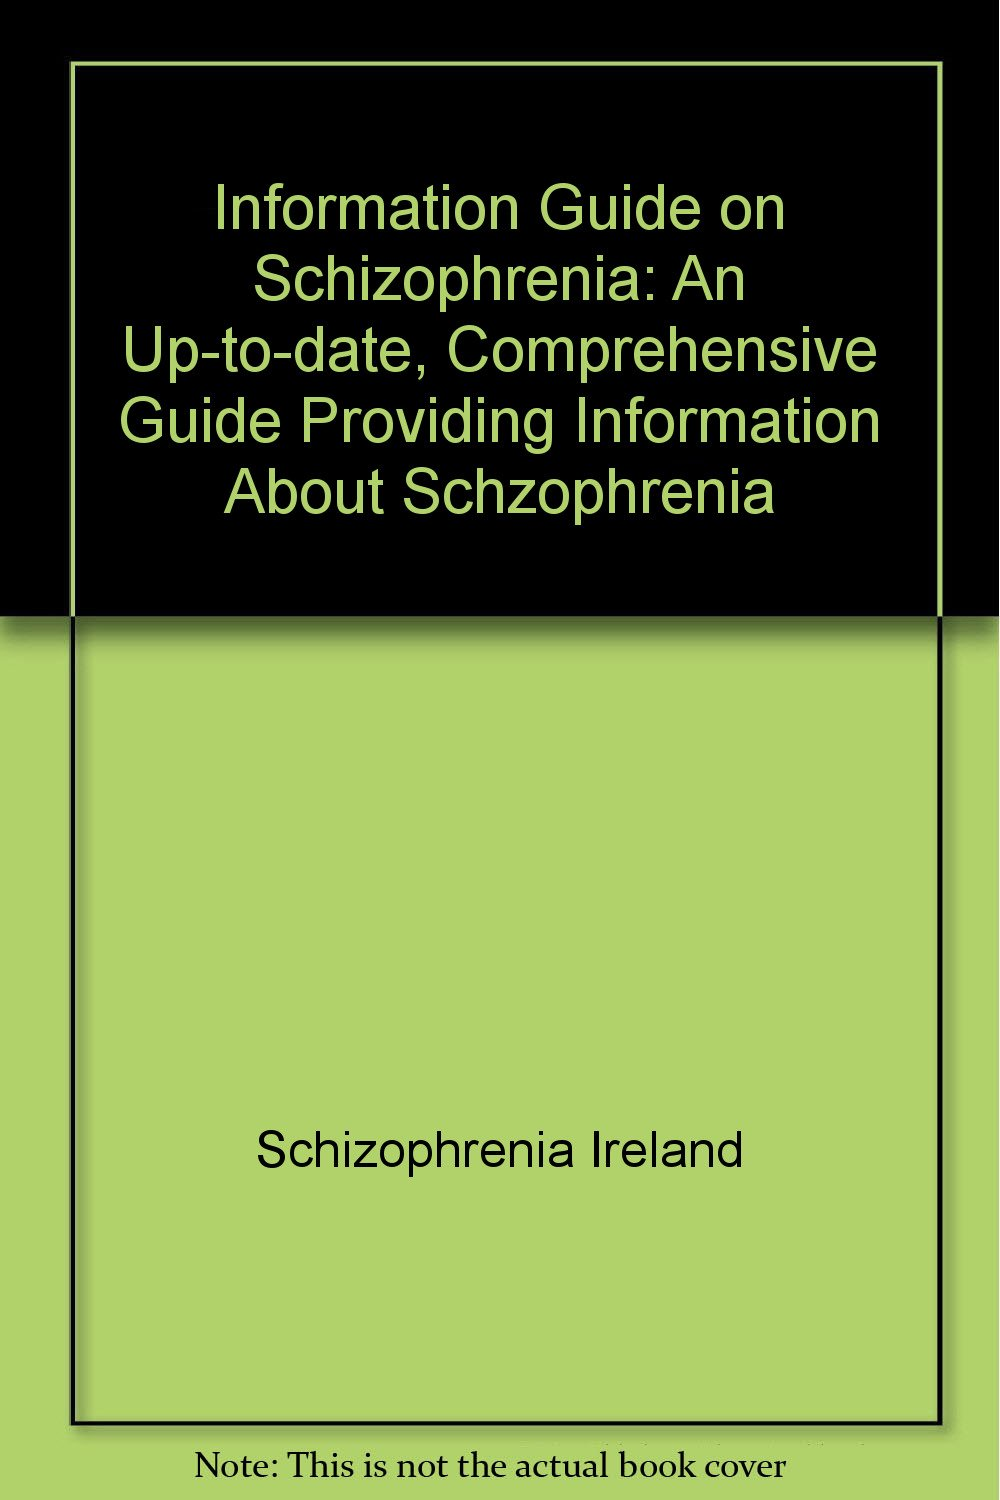 Information Guide On Schizophrenia An Up To Date Comprehensive